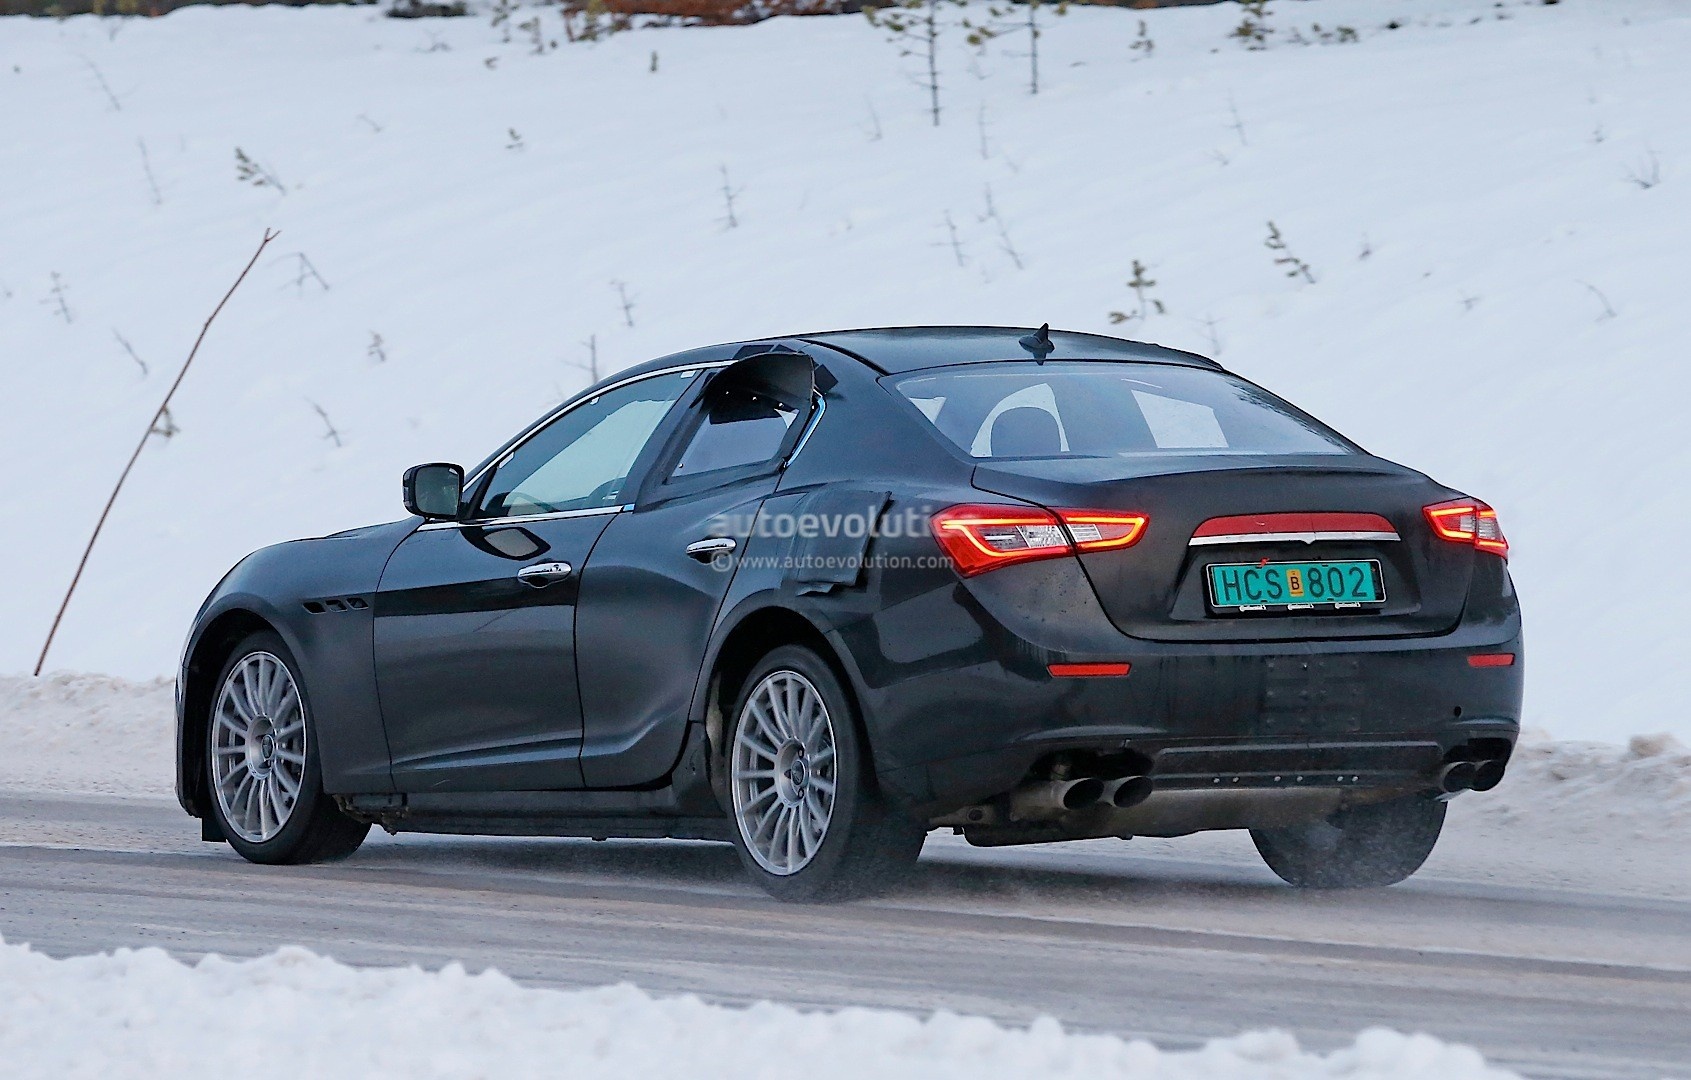 alfa-romeo-tipo-952-spied-winter-testing-its-a-giulia-sedan-test-mule-photo-gallery_8